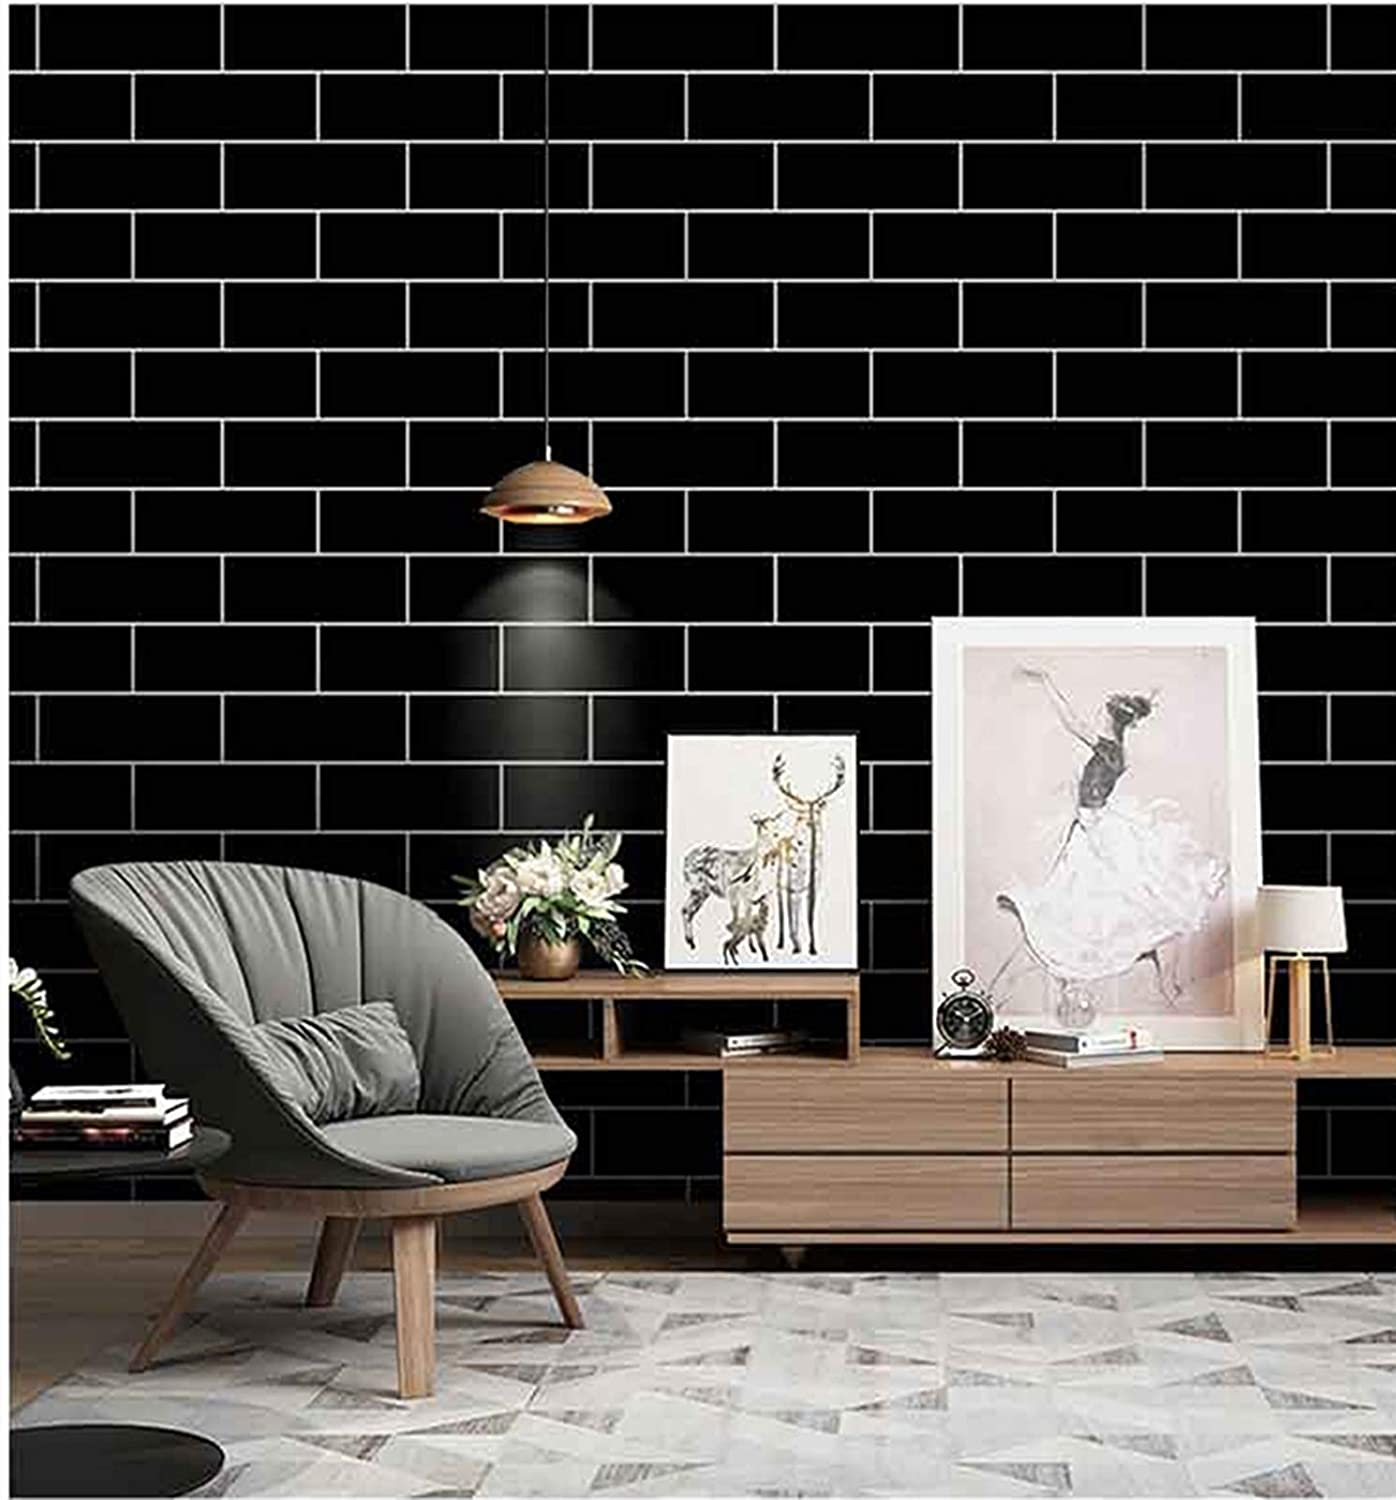 Brick Wallpaper Black Trellis Wallpaper Black Brick Wallpaper Black Subway Wallpaper Tile Black Wallpaper Peel And Stick Wallpaper Self Adhesive On Kitchen Bathroom Removable Wall Covering 17 7 78 7 Amazon Com